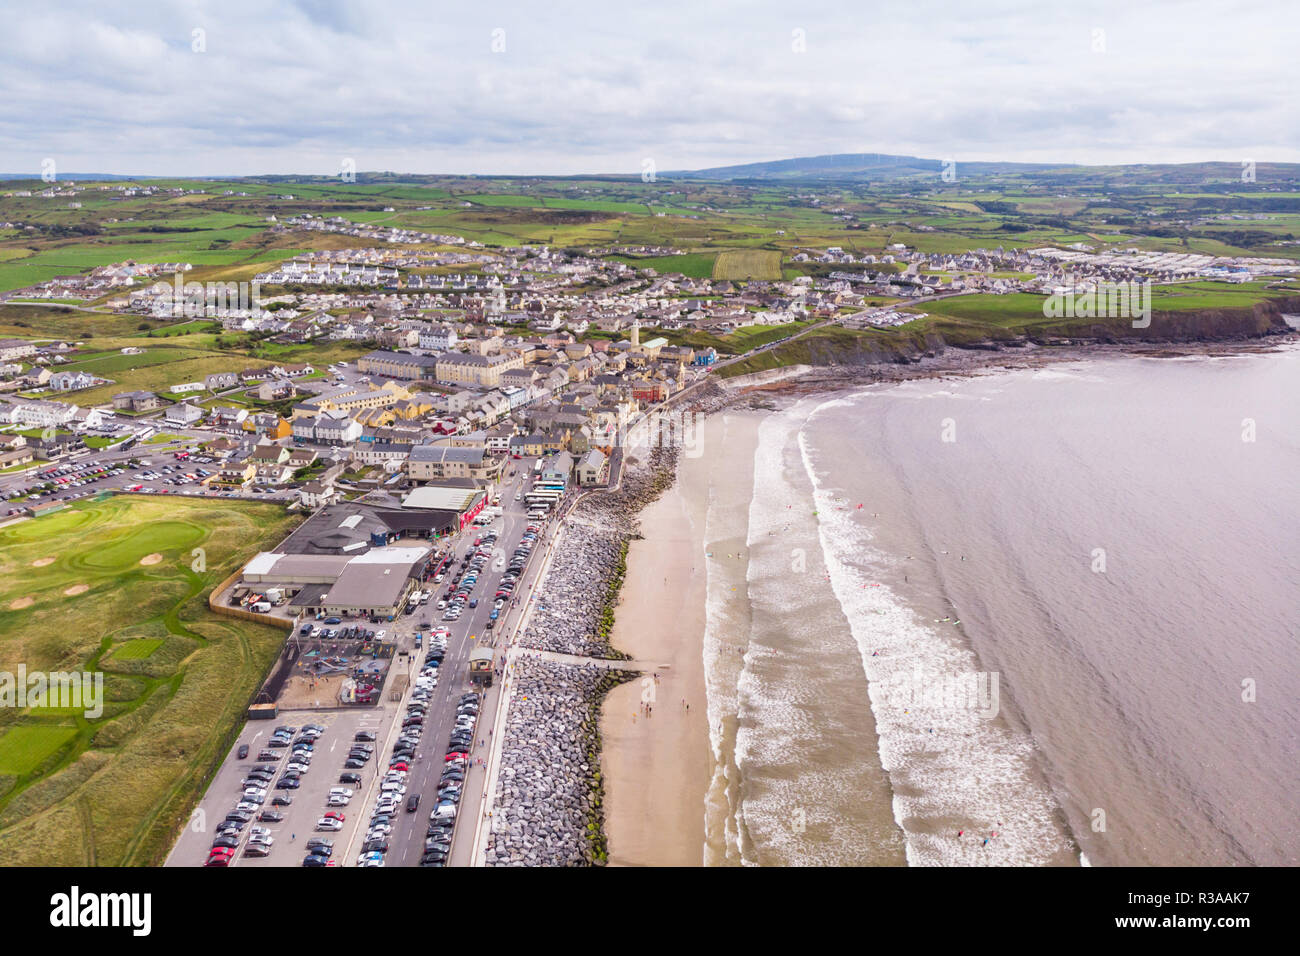 Lahinch or Lehinch is a small town on Liscannor Bay, on the northwest coast of County Clare, Ireland. The town is a seaside resort and has become a po - Stock Image